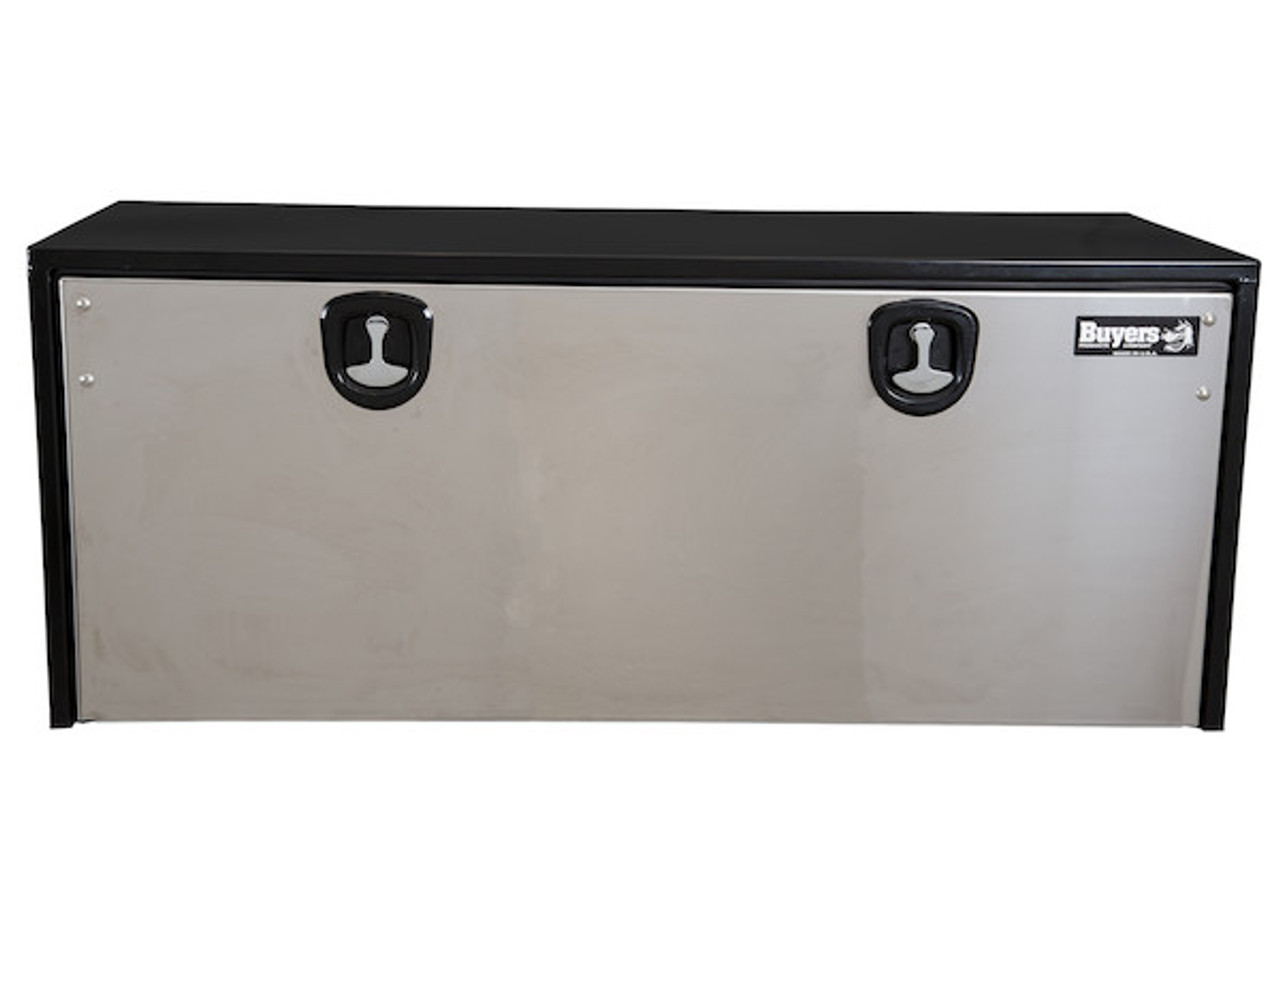 """1704715 BUYERS PRODUCTS BLACK STEEL UNDERBODY TRUCK TOOLBOX WITH STAINLESS STEEL DOOR 24""""HX24""""DX60""""W"""